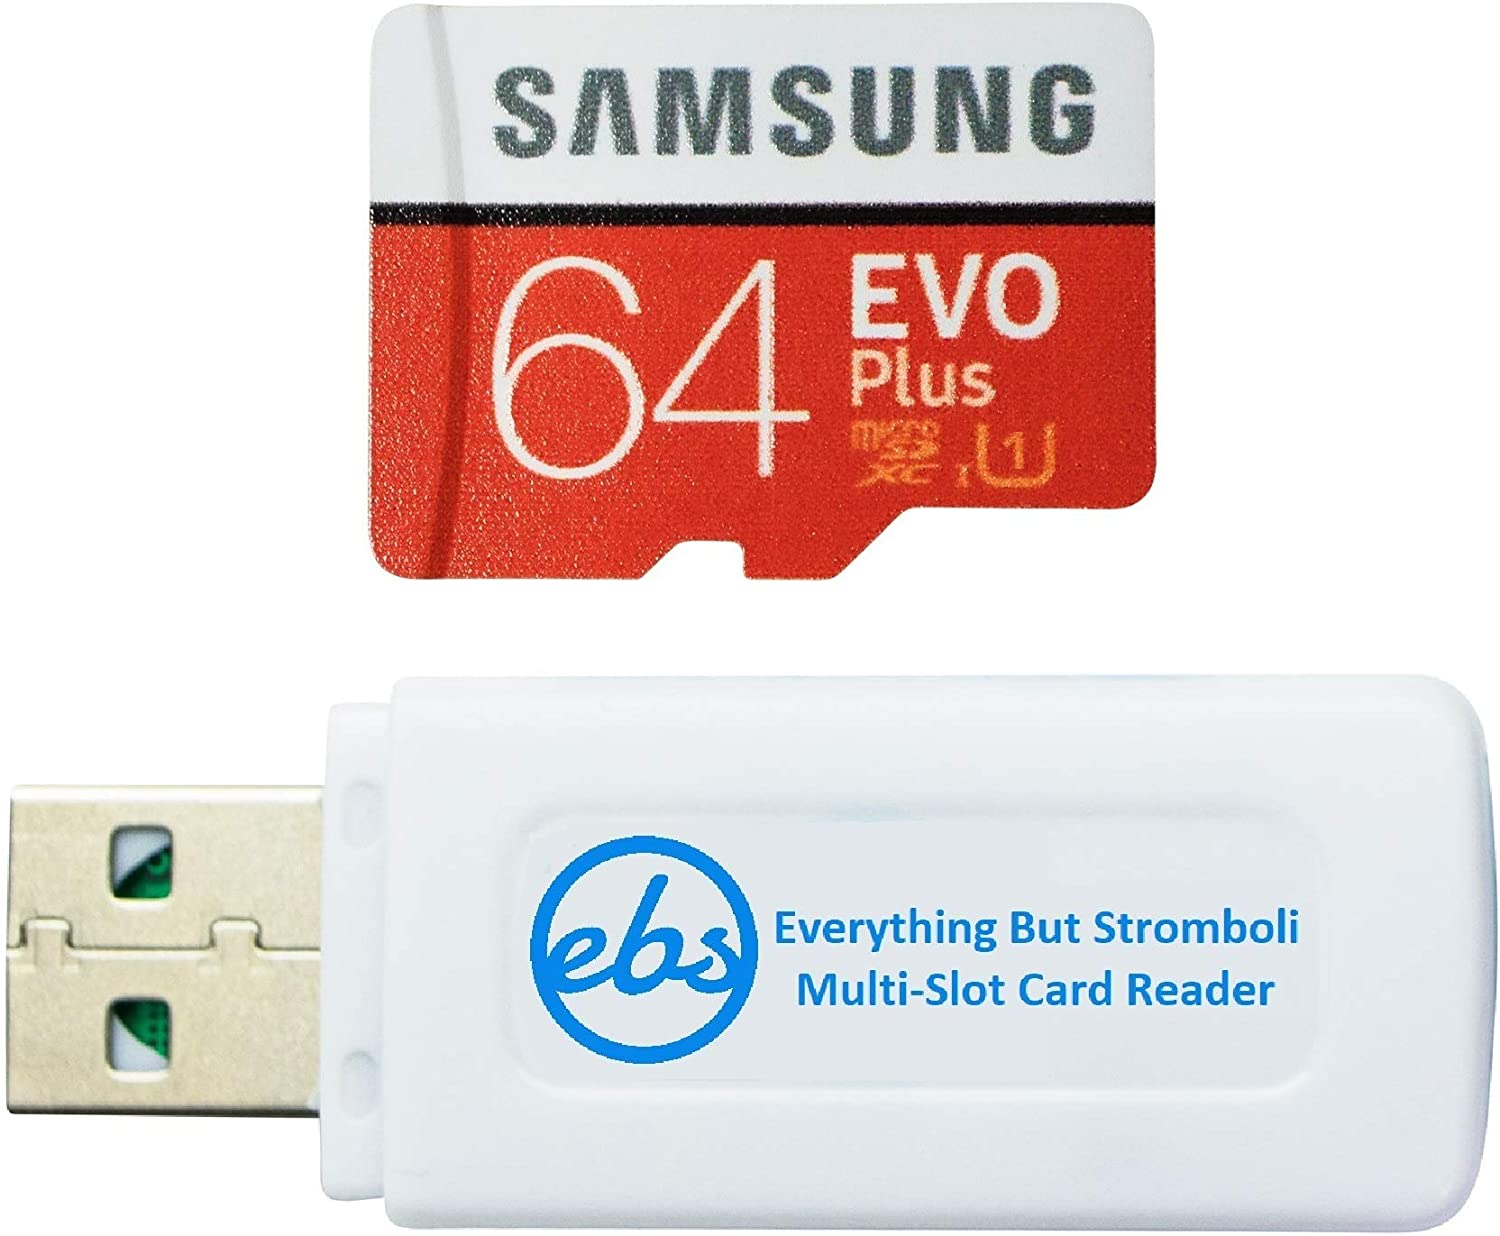 Samsung Evo Plus 64GB Micro SDXC Memory Card Works with Canon Ivy CLIQ+ 2, Ivy CLIQ 2 Instant Camera, Ivy REC Action Camera (MB-MC64) Bundle with (1) Everything But Stromboli MicroSD & SD Card Reader